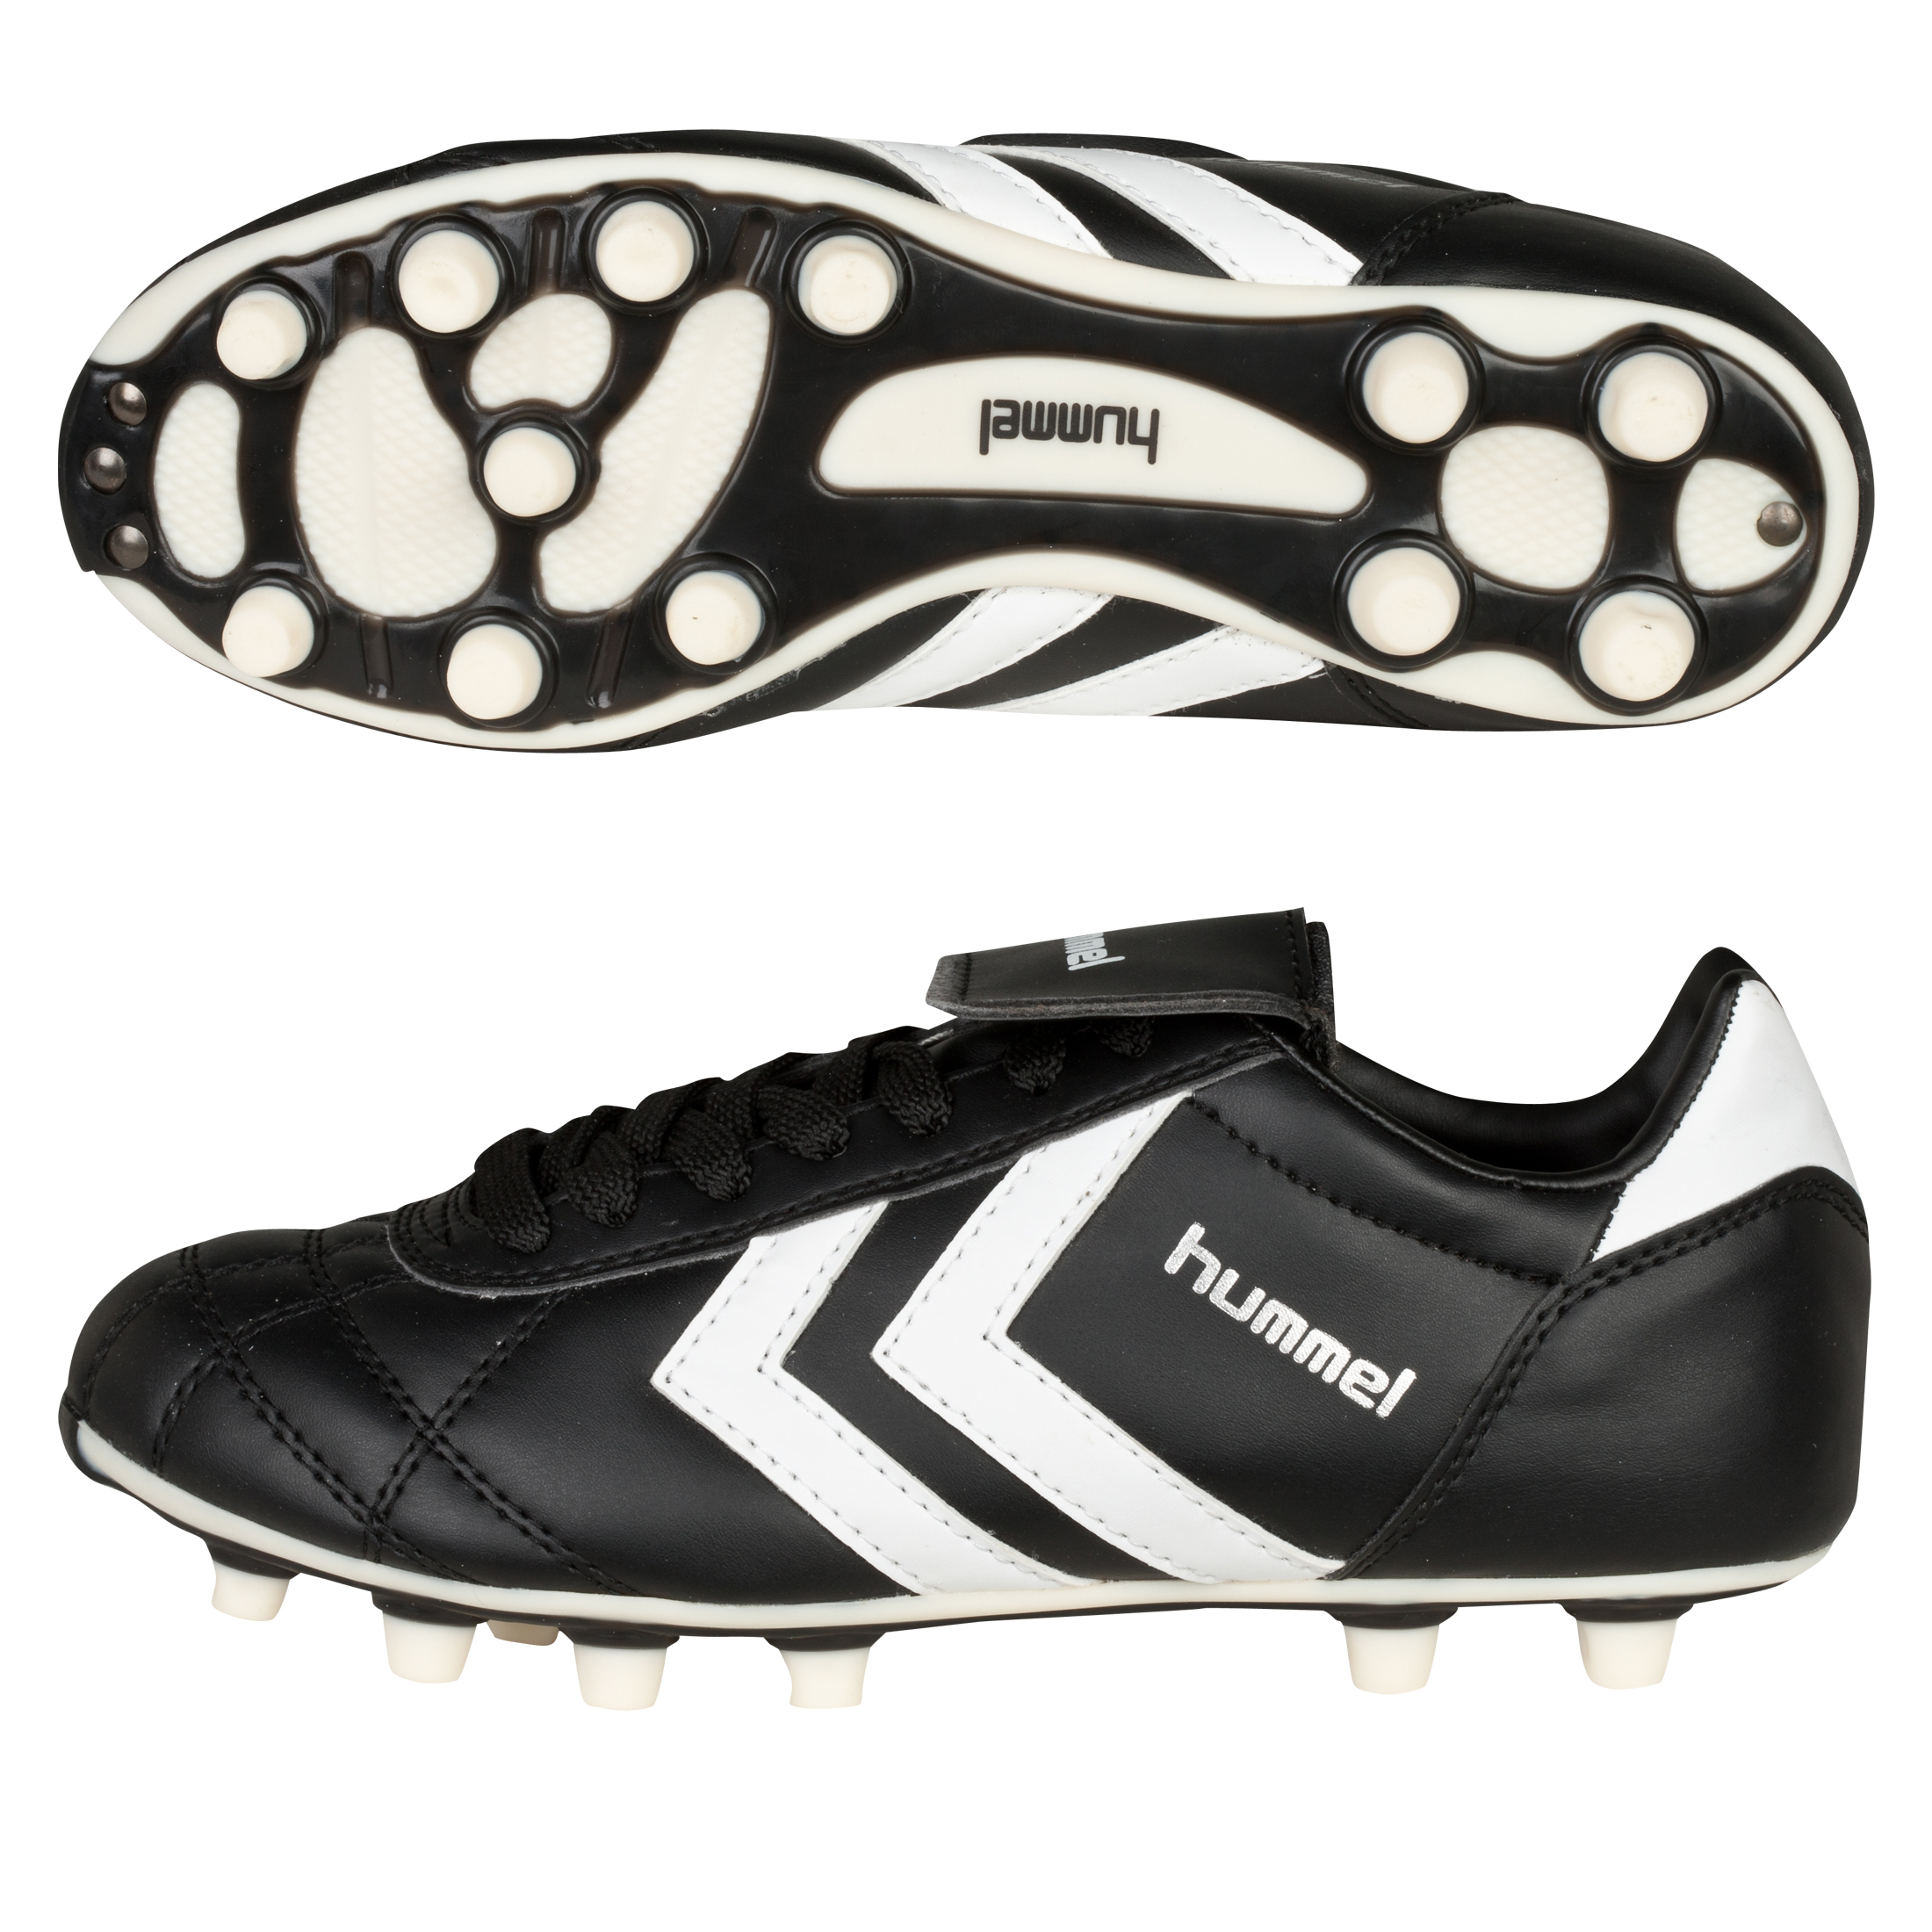 Hummel Star Synthetic Firm Ground Football Boots - Black/White - Kids